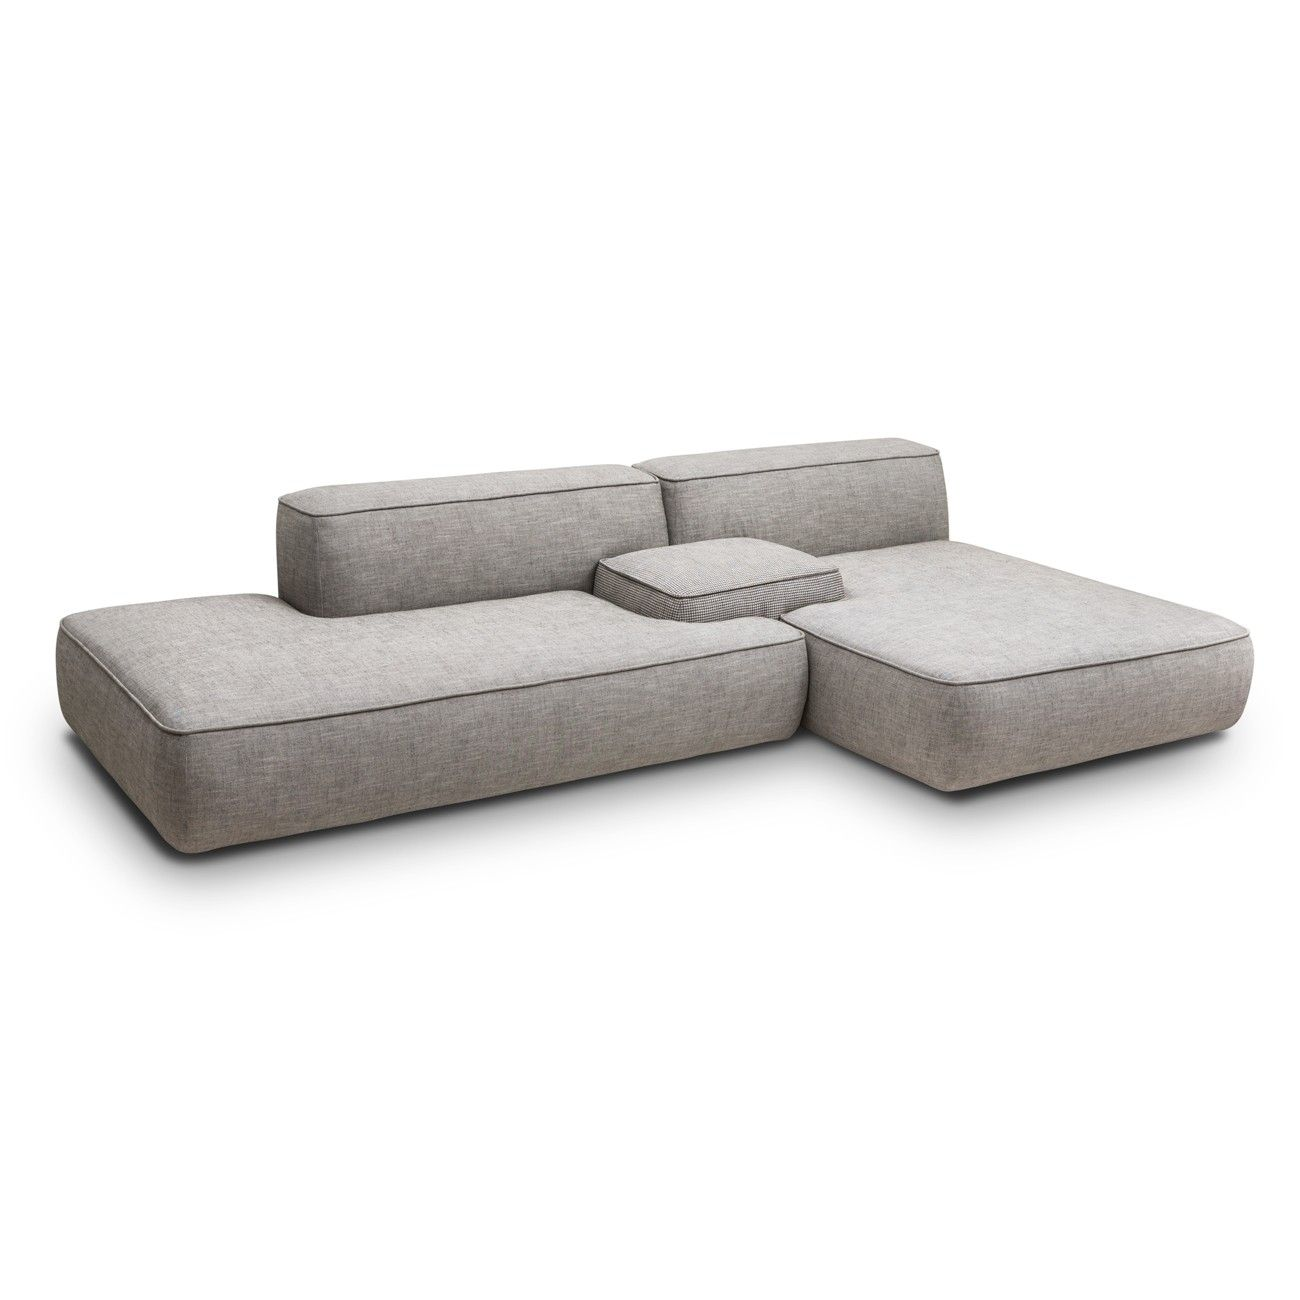 Modular Furniture Sofa: Modular Chaise Sofa Vitra Soft Modular Sofa Three Seater